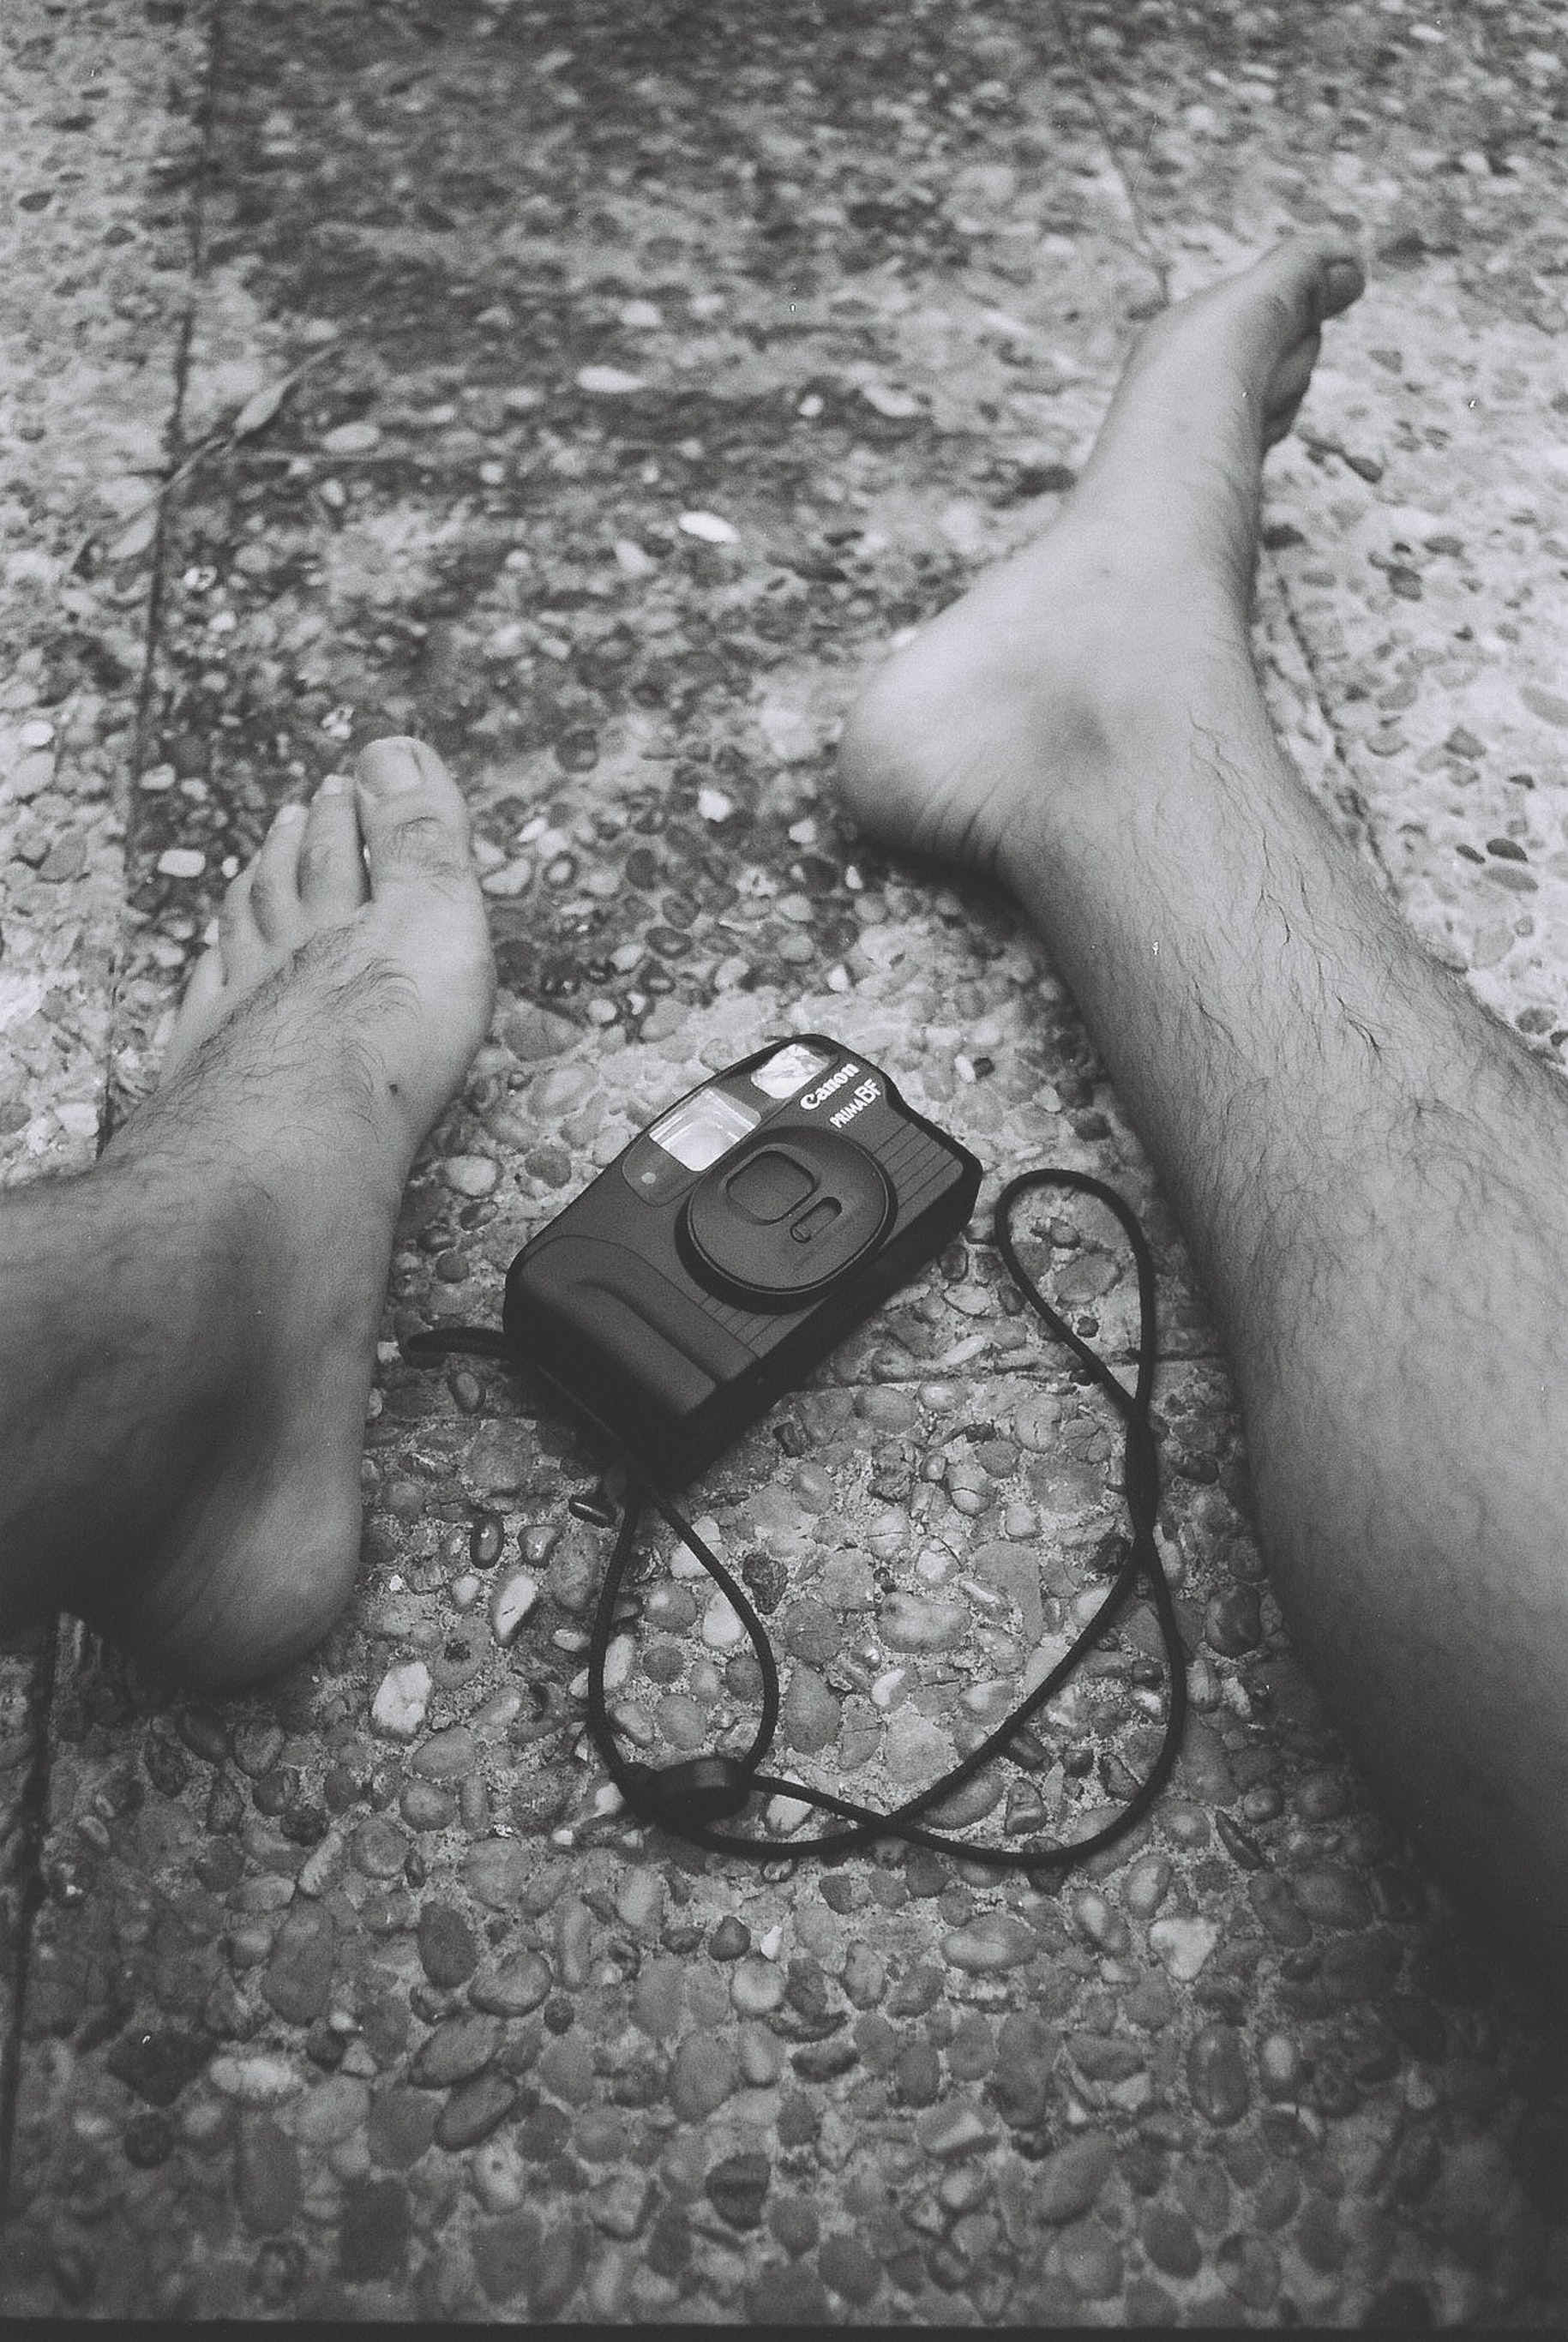 camera in the middle of persons feet